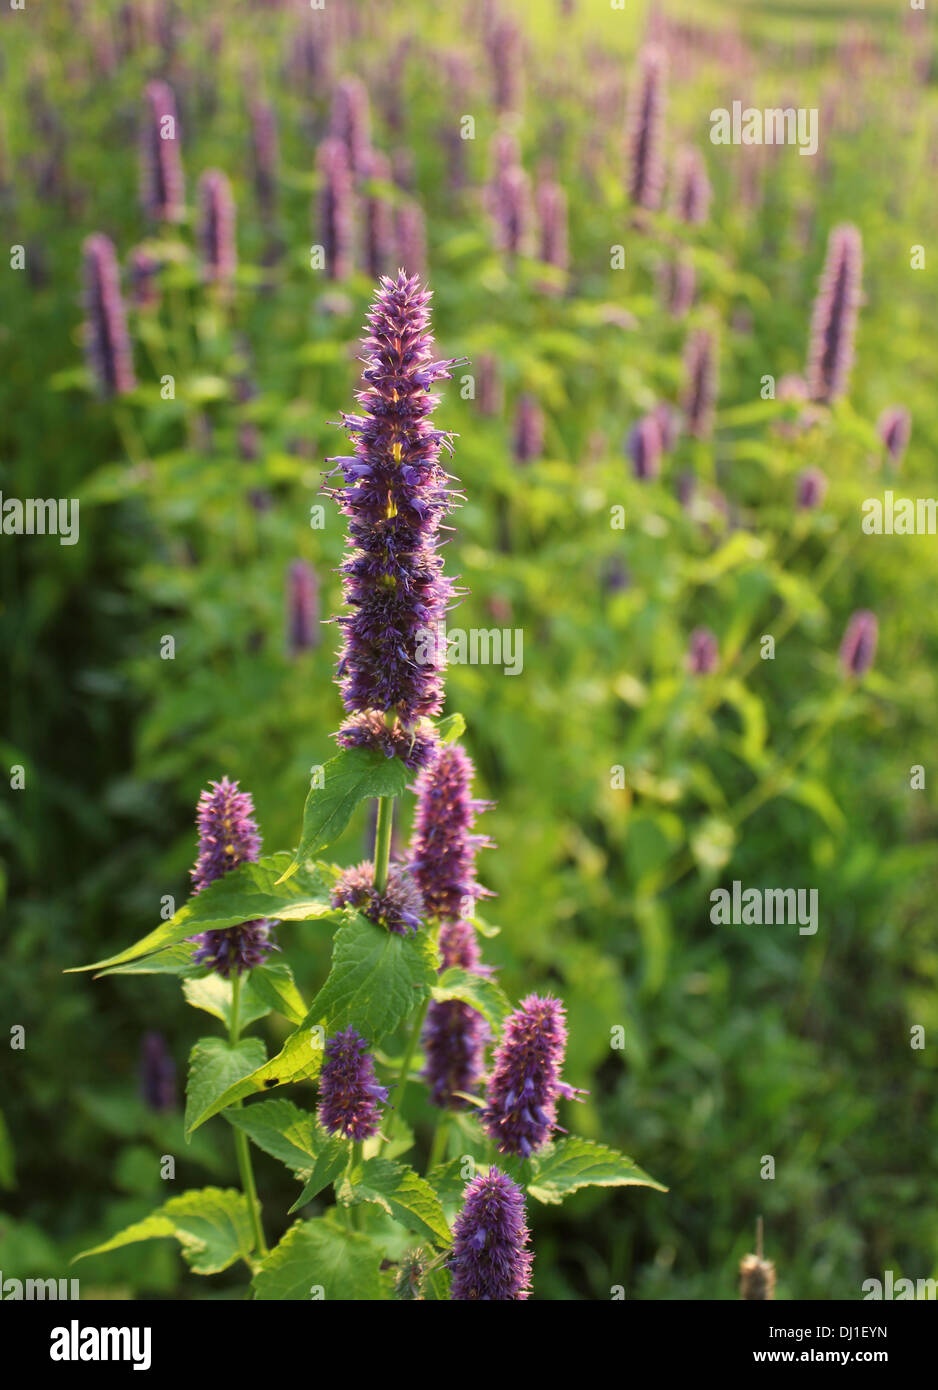 Blooming flower (giant hyssop ) - Stock Image